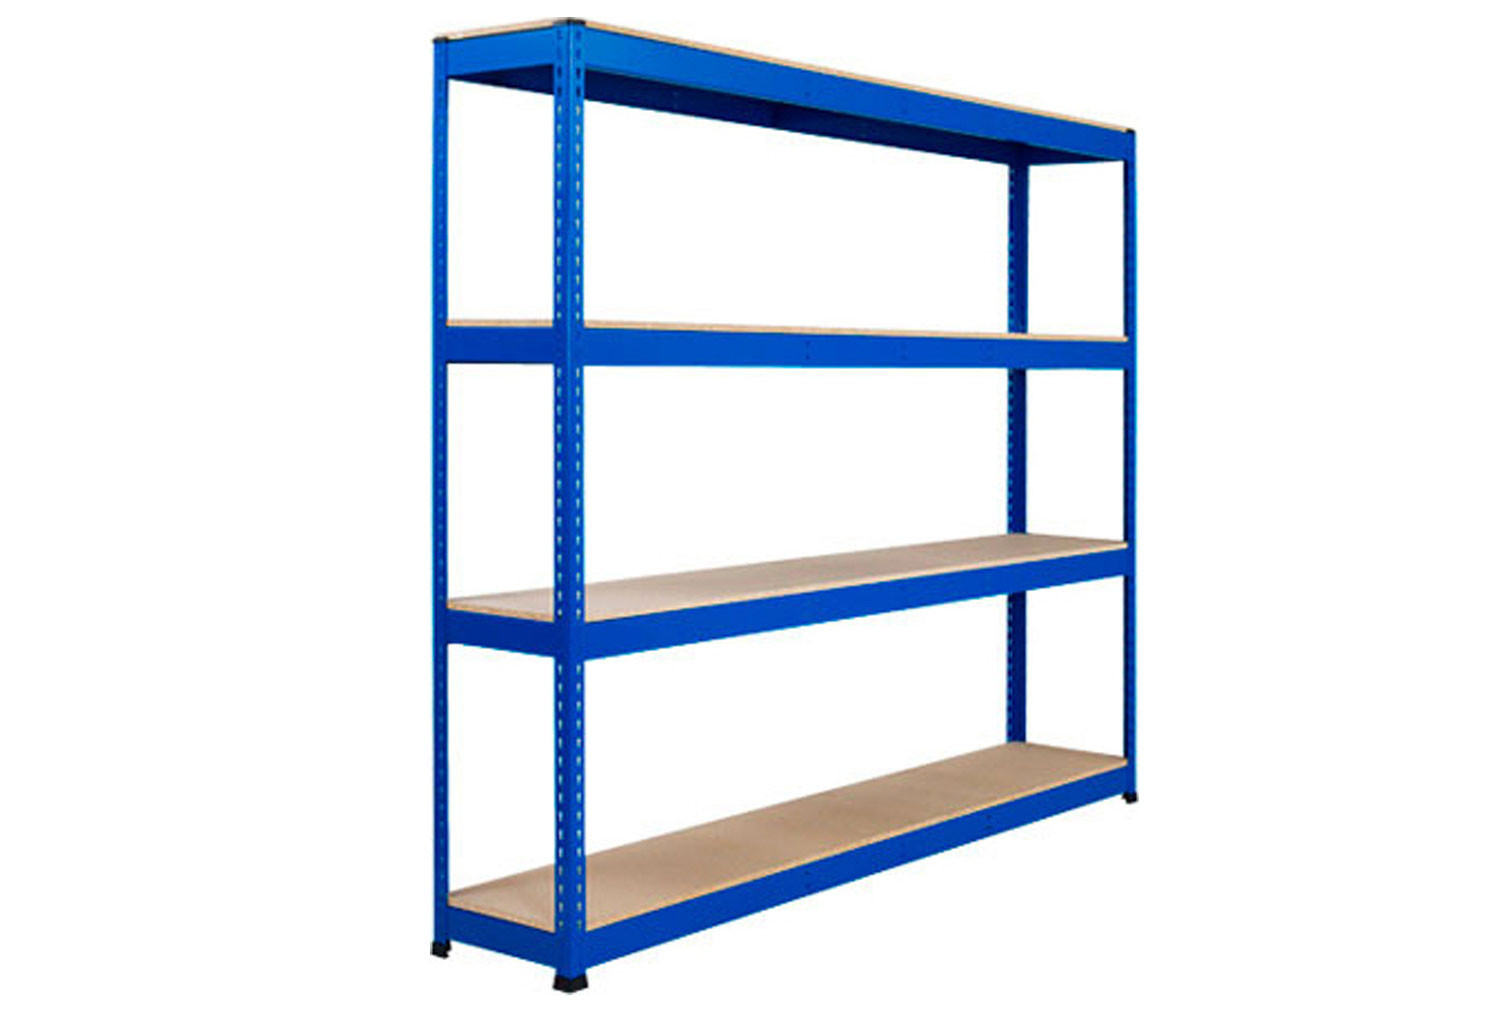 Rapid 1 Heavy Duty Shelving With 4 Chipboard Shelves 2134wx1980h (Blue)